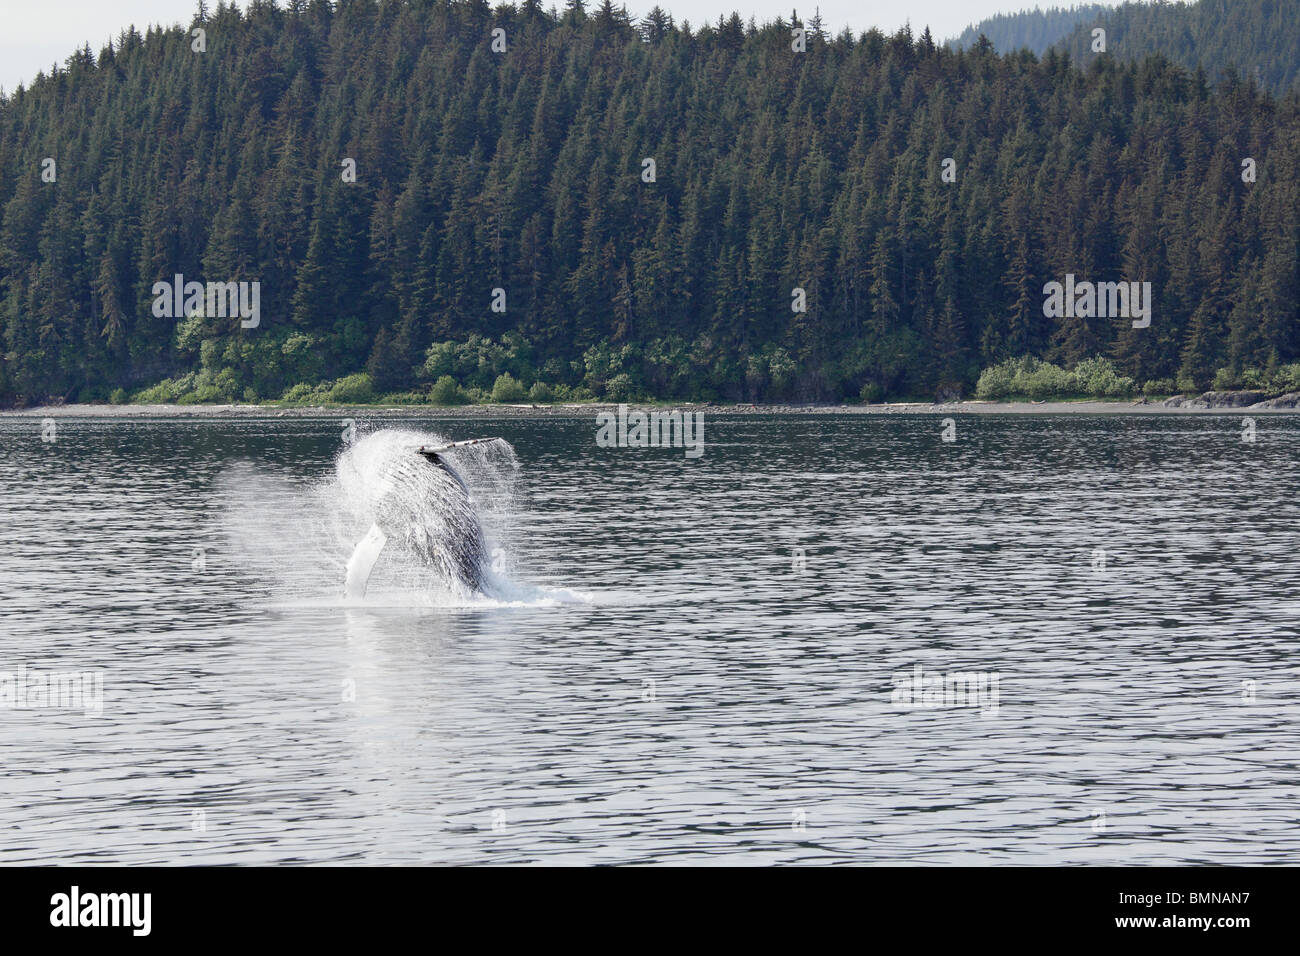 Humpback whale breaching off Icy Straits Point Alaska 8 - Stock Image